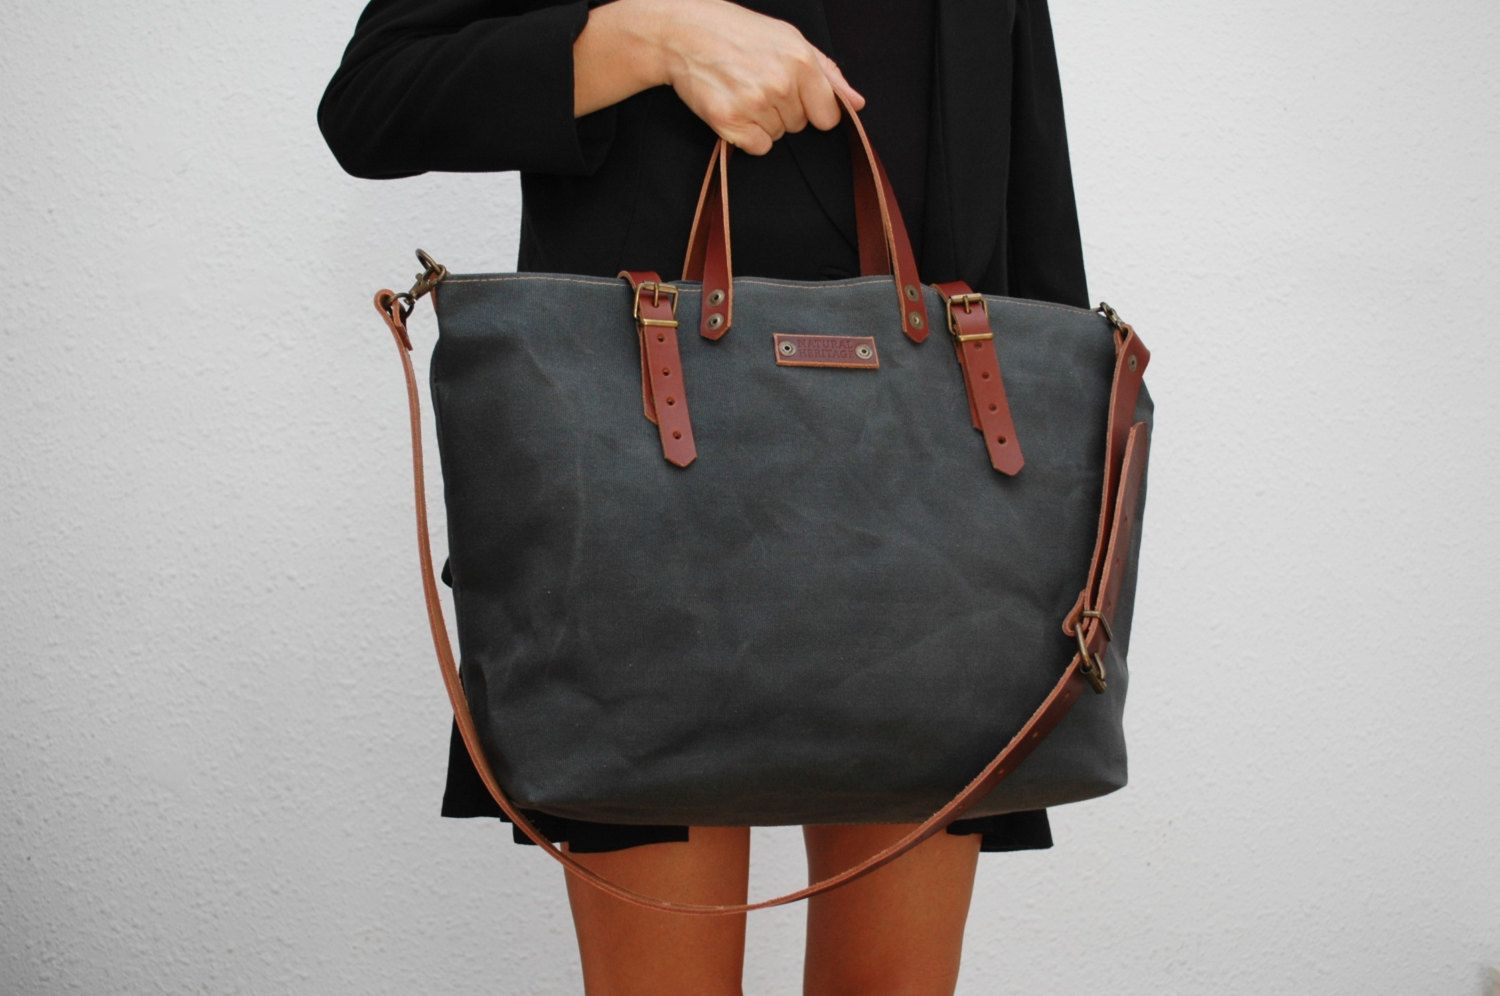 Waxed Canvas Tote Bag with Leather Handles Large Black Tote With Extra Pocket